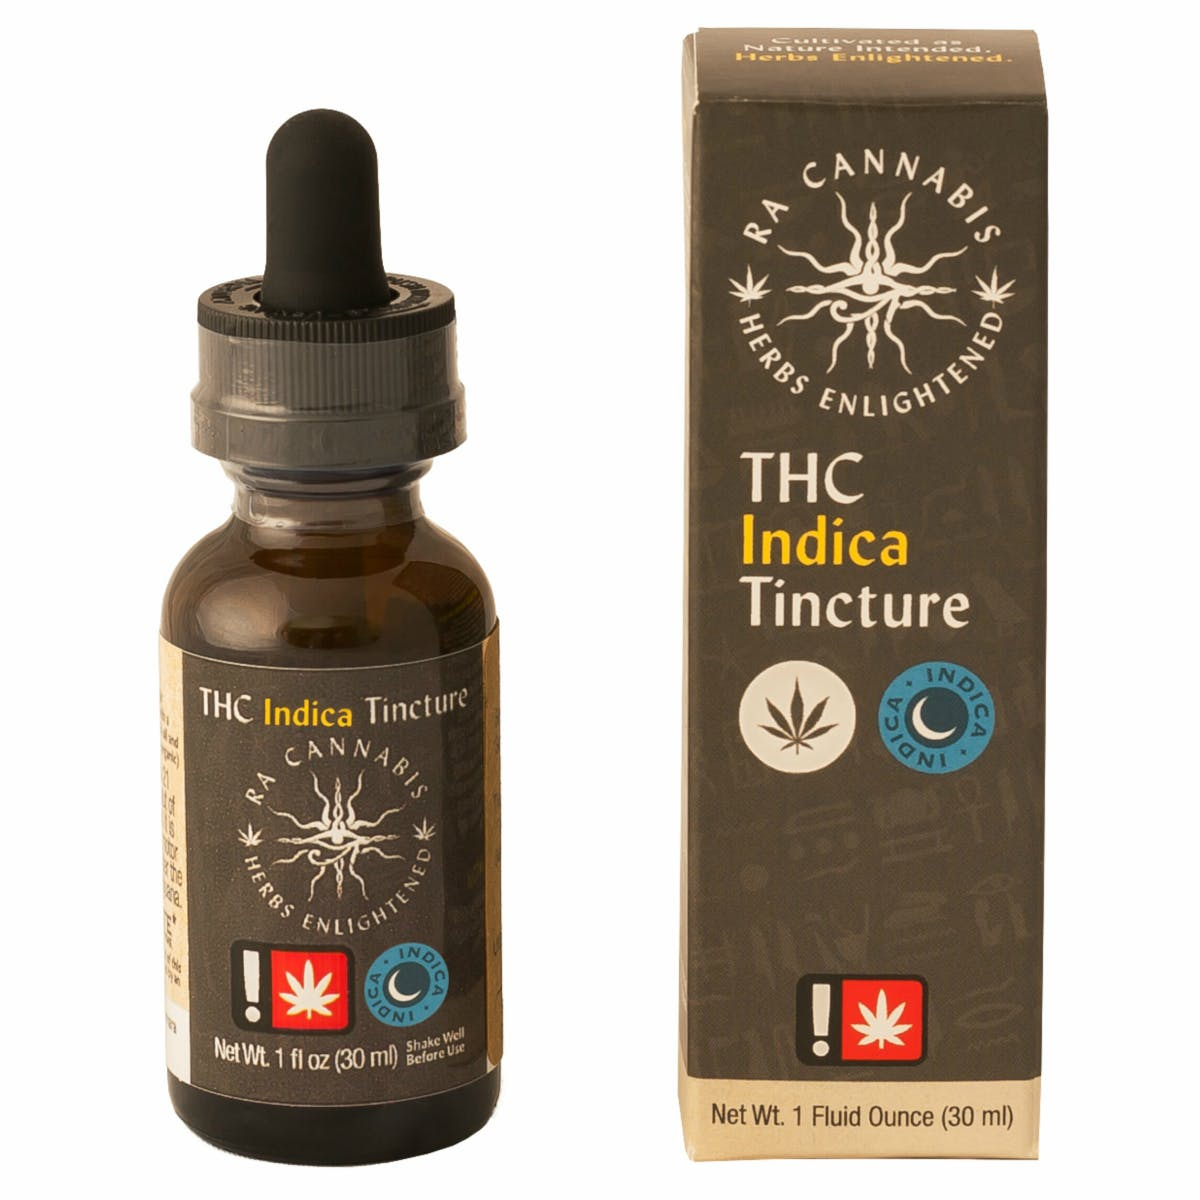 marijuana-dispensaries-caspers-cannabis-club-in-eugene-ra-cannabis-tincture-indica